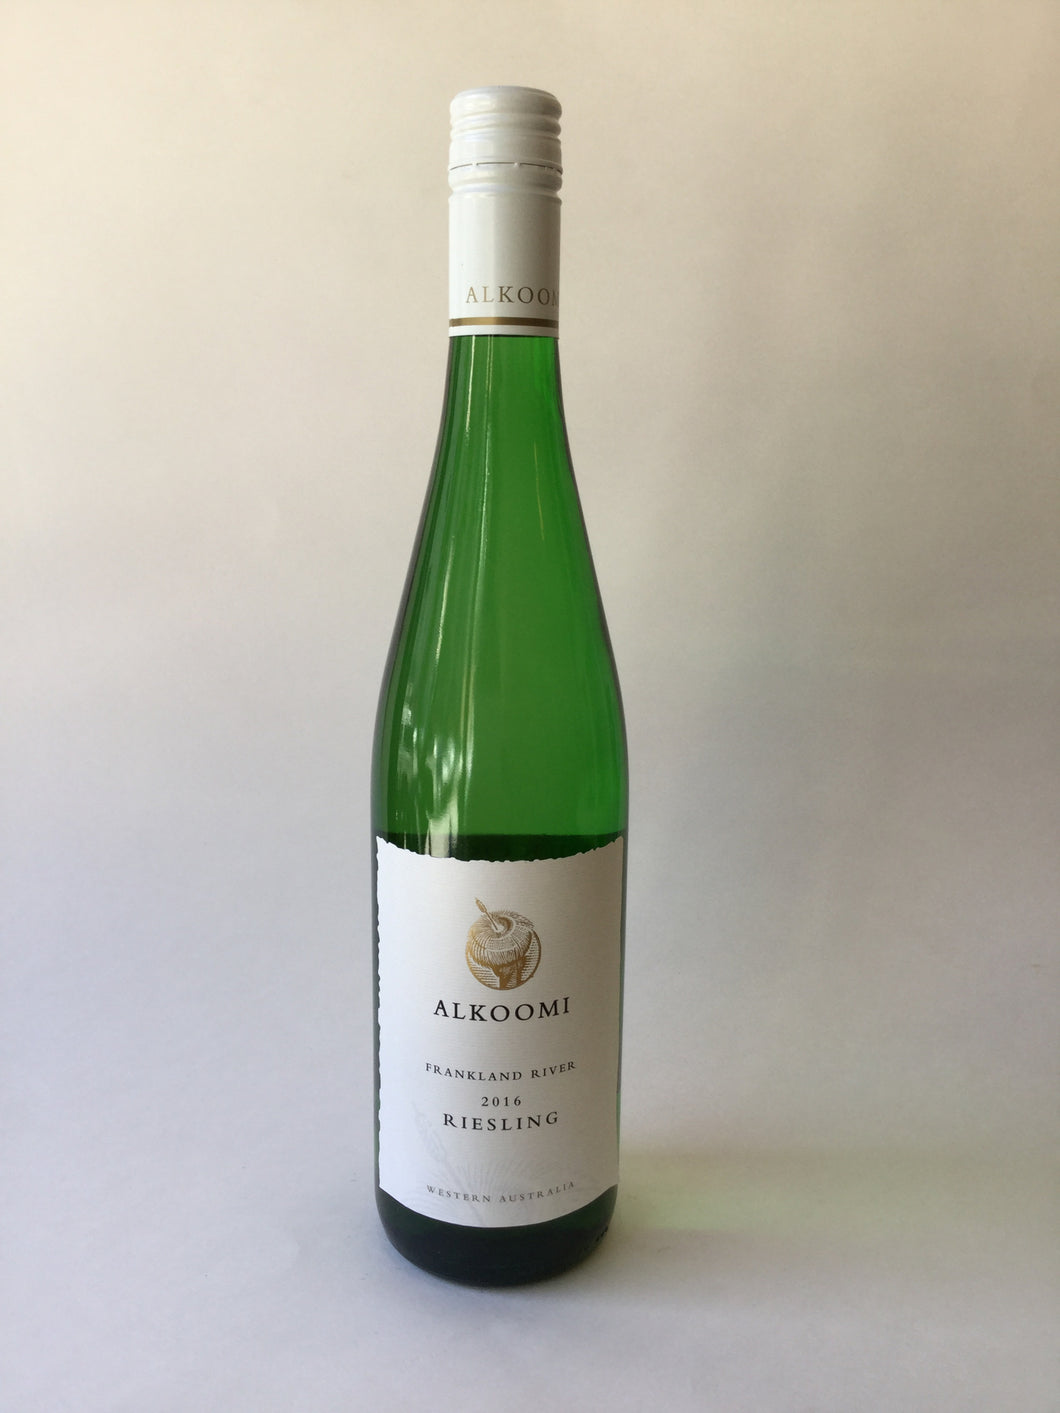 Alkoomi, Frankland River Riesling 2017, 750ml - Frankly Wines